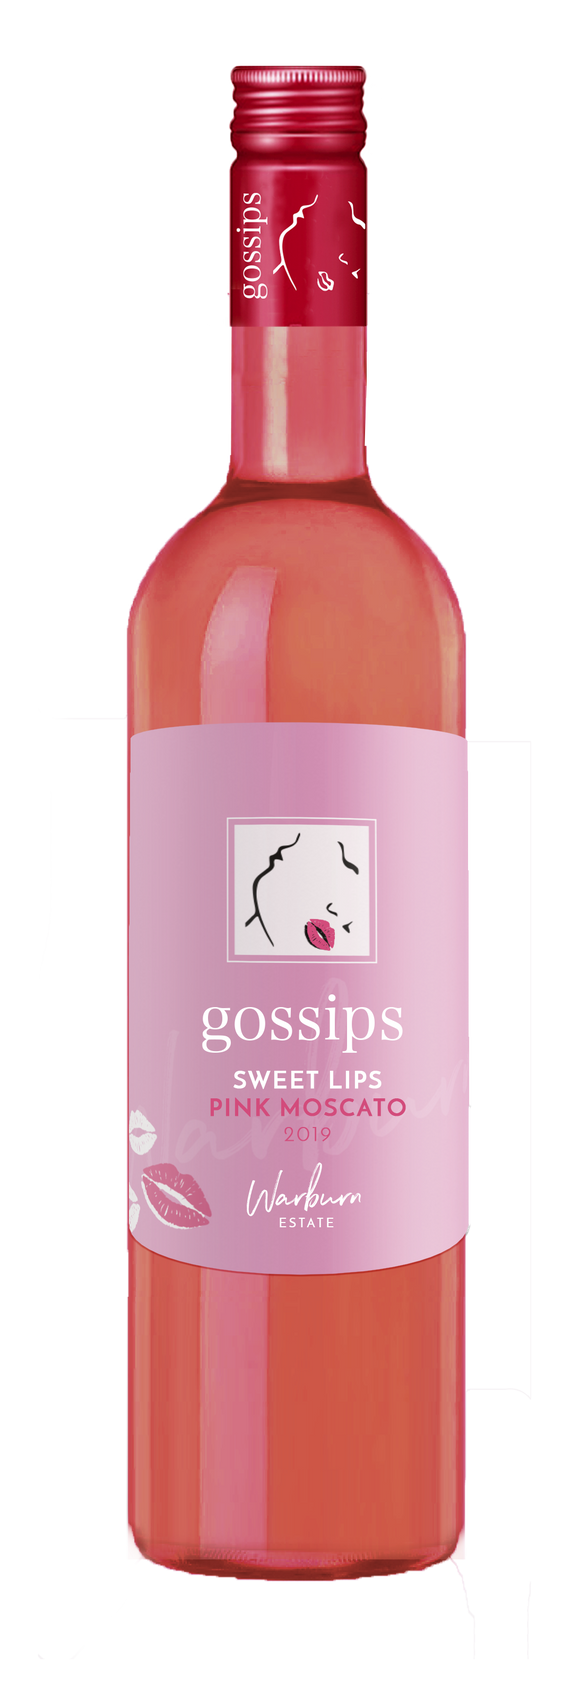 Gossips Pink Moscato